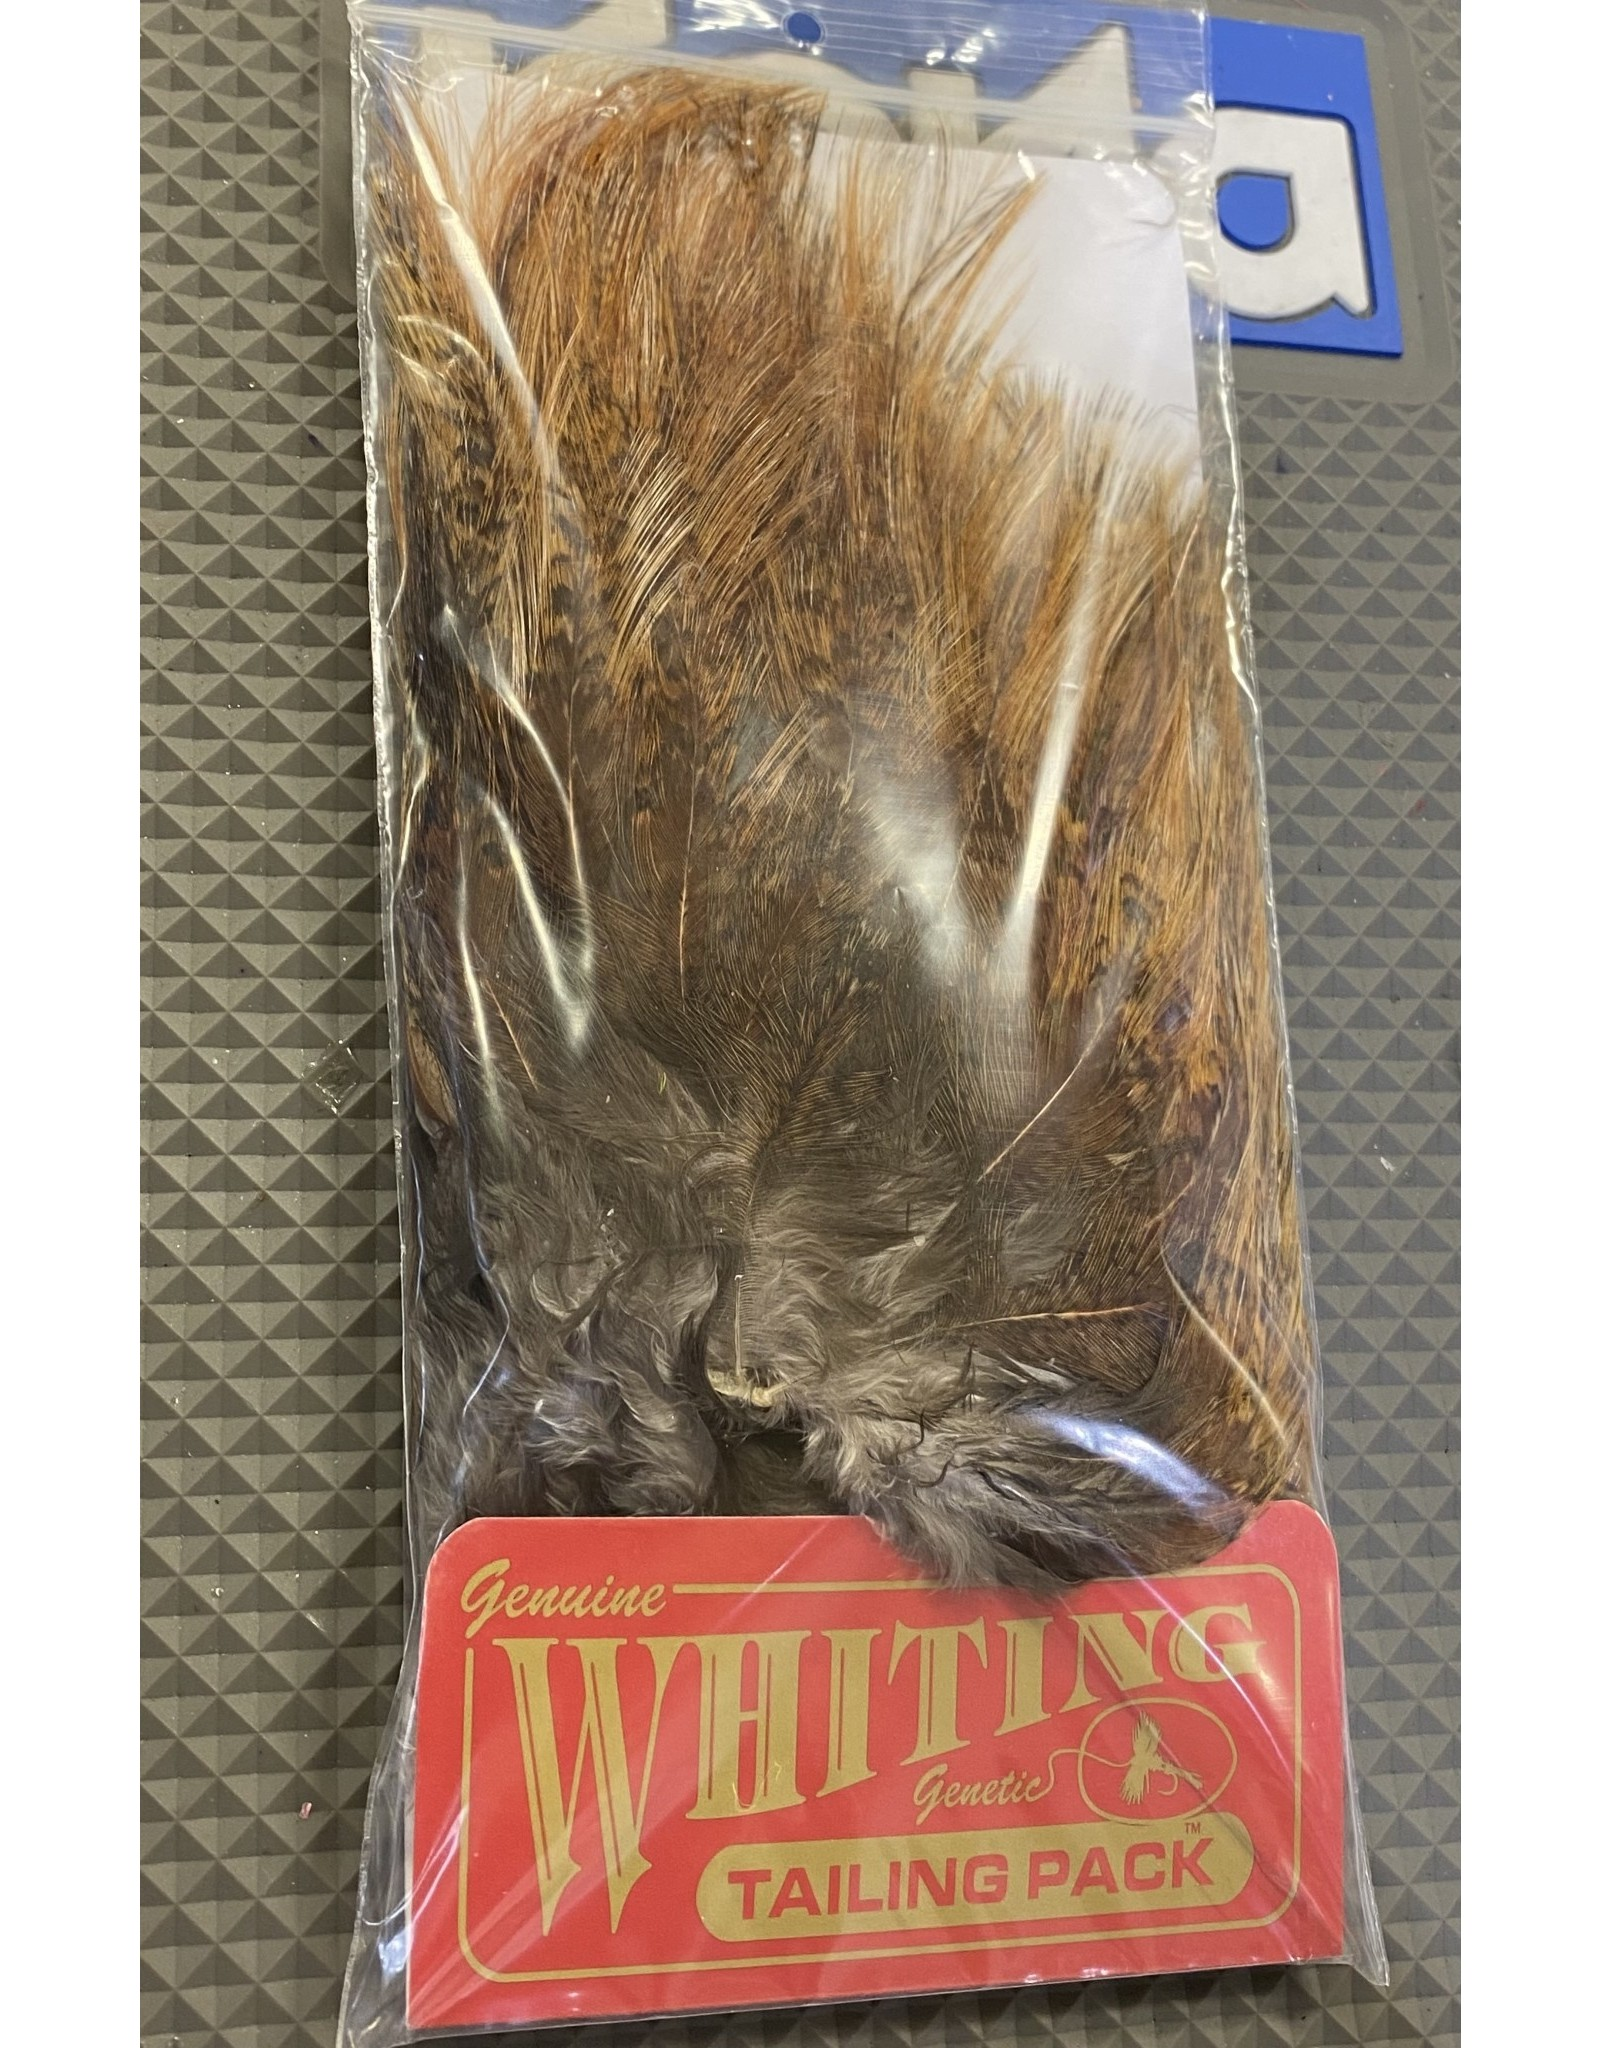 Whiting Farms Whiting Coq-de-Leon Tailing Pack - Ginger Pardo